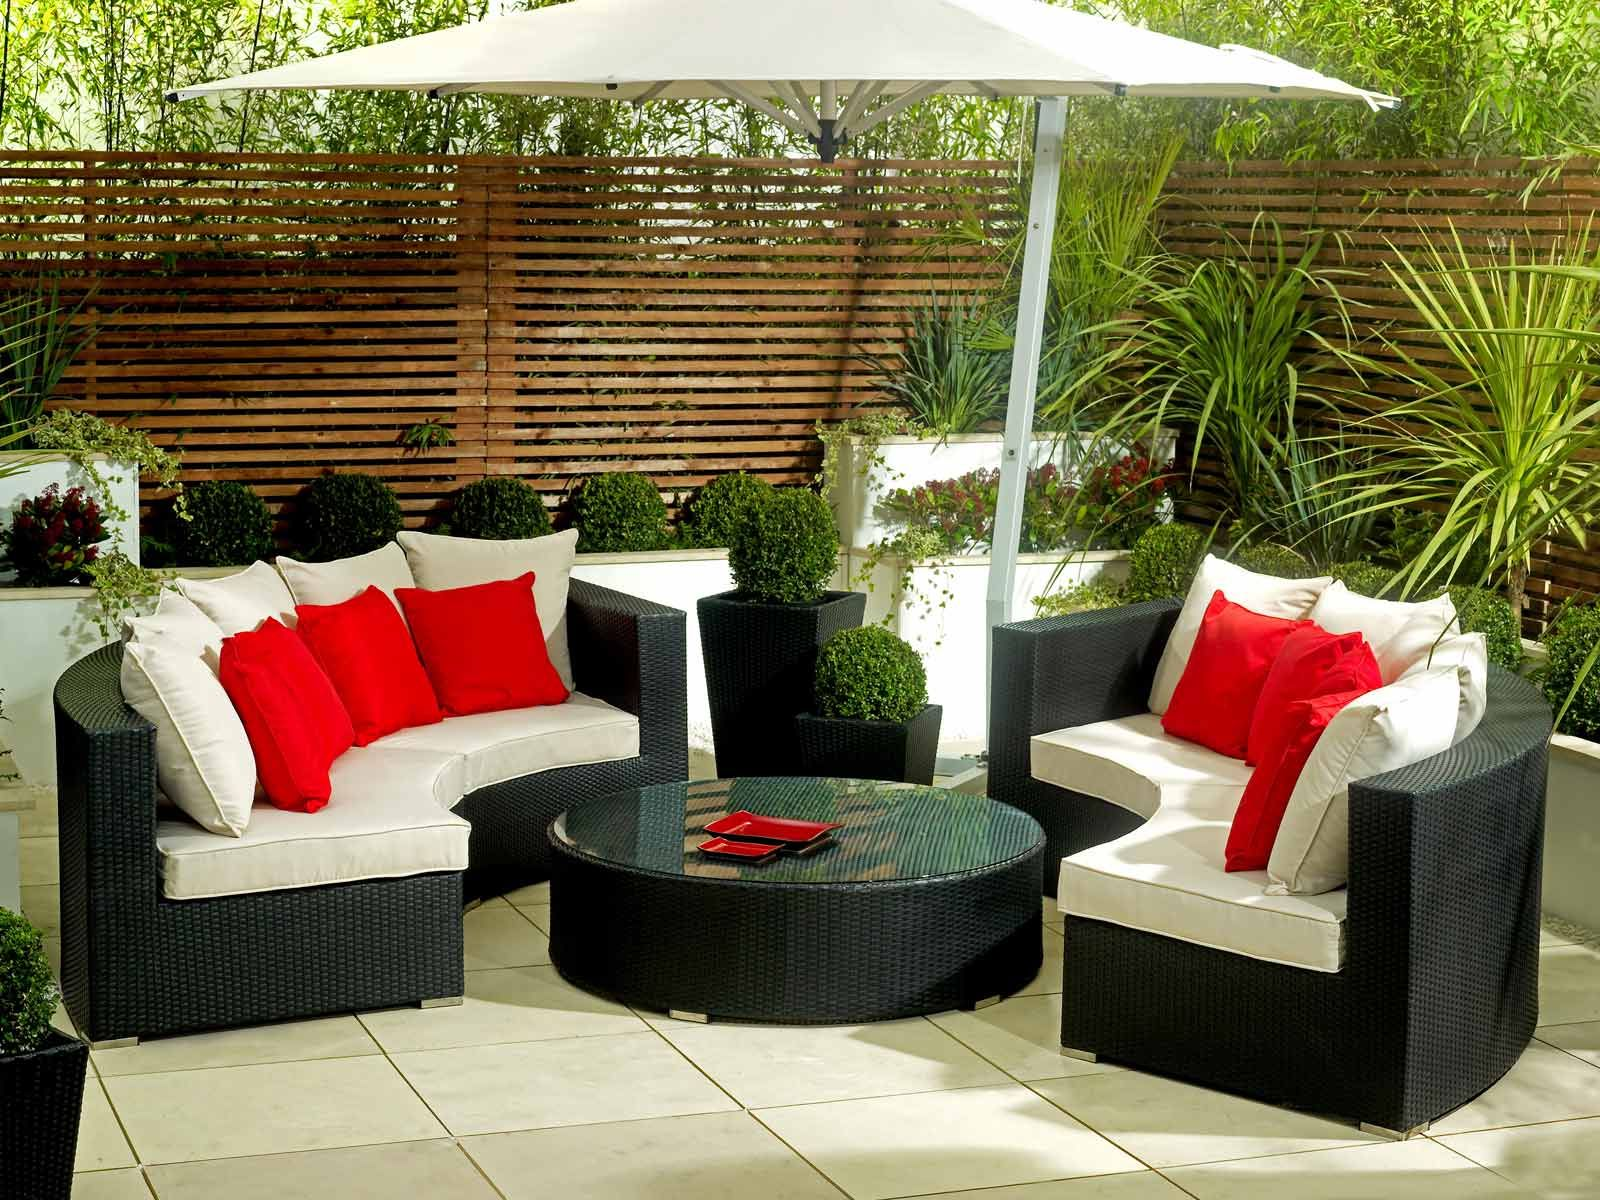 Awesome Outdoor Patio Furniture Options and Ideas